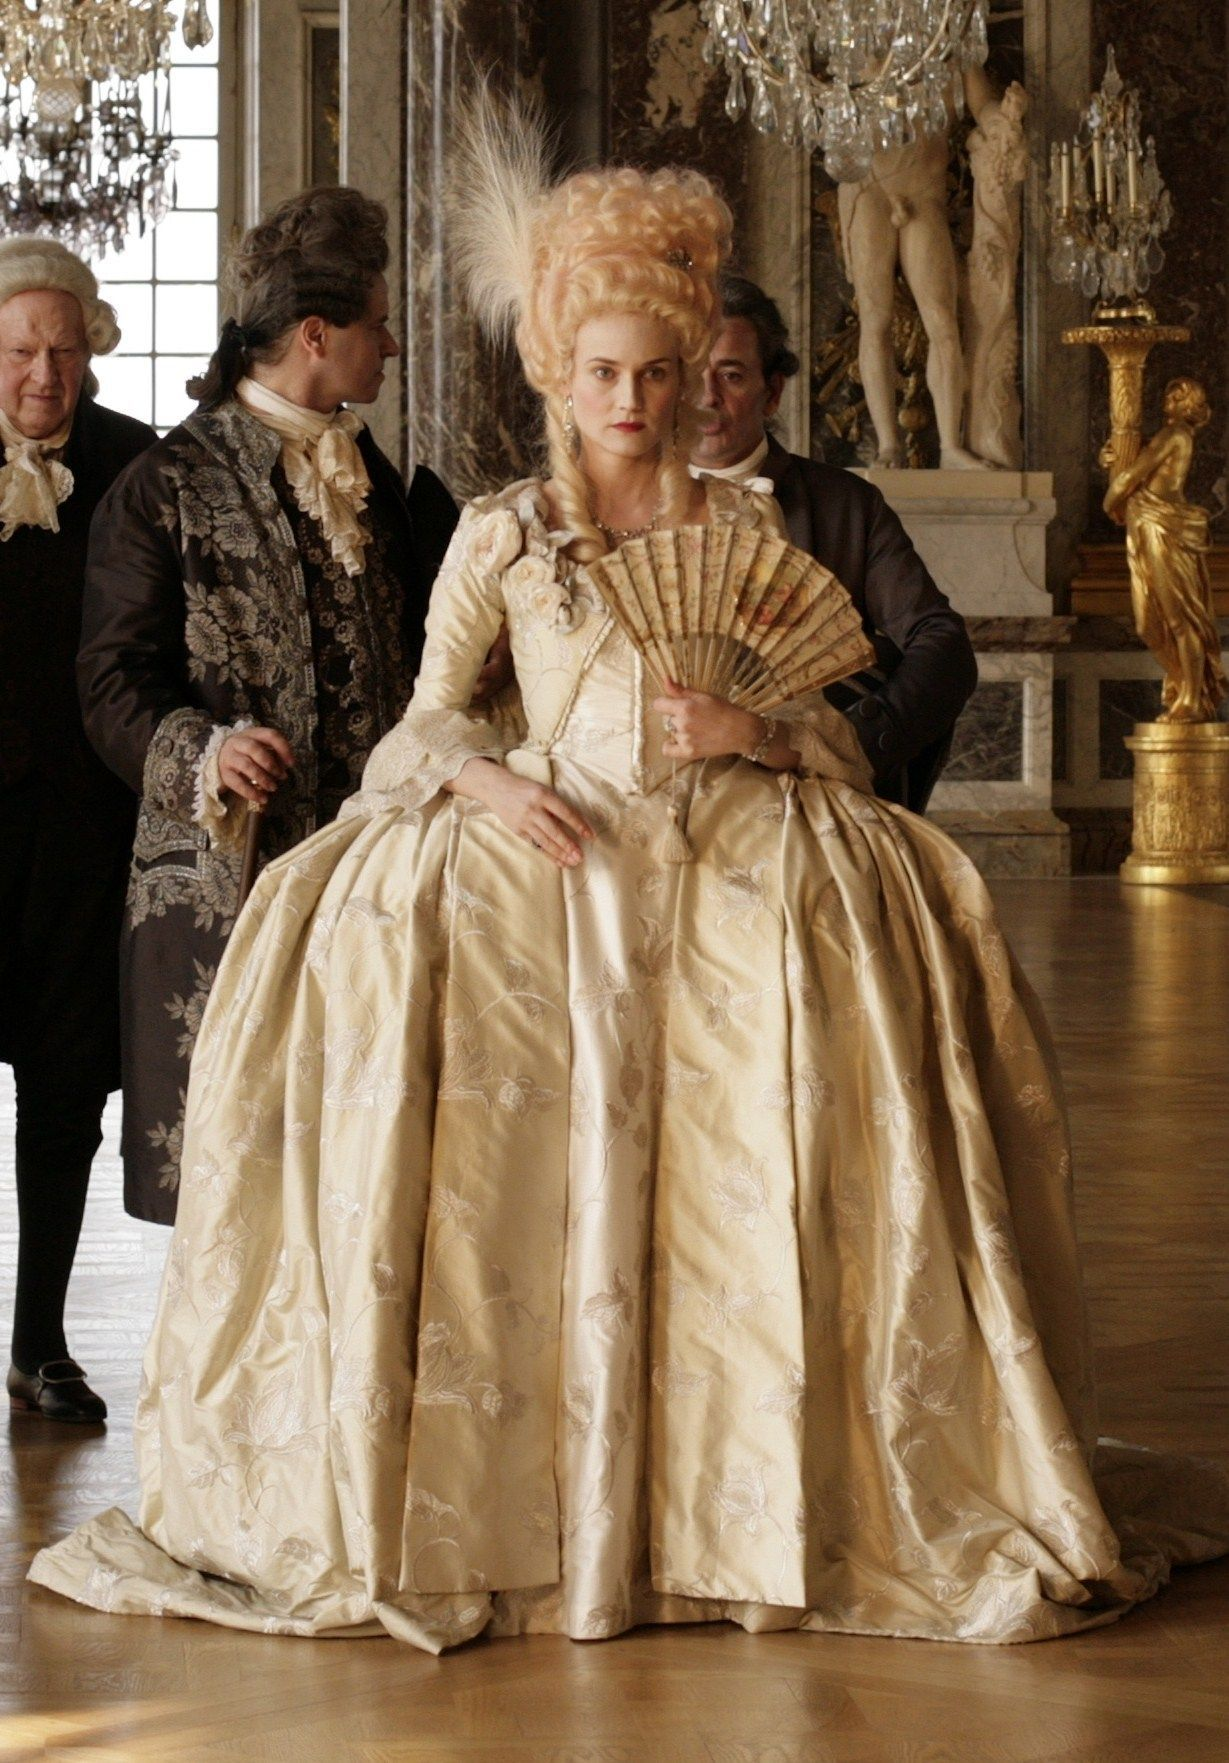 Diane kruger as marie antoinette double click on image to enlarge